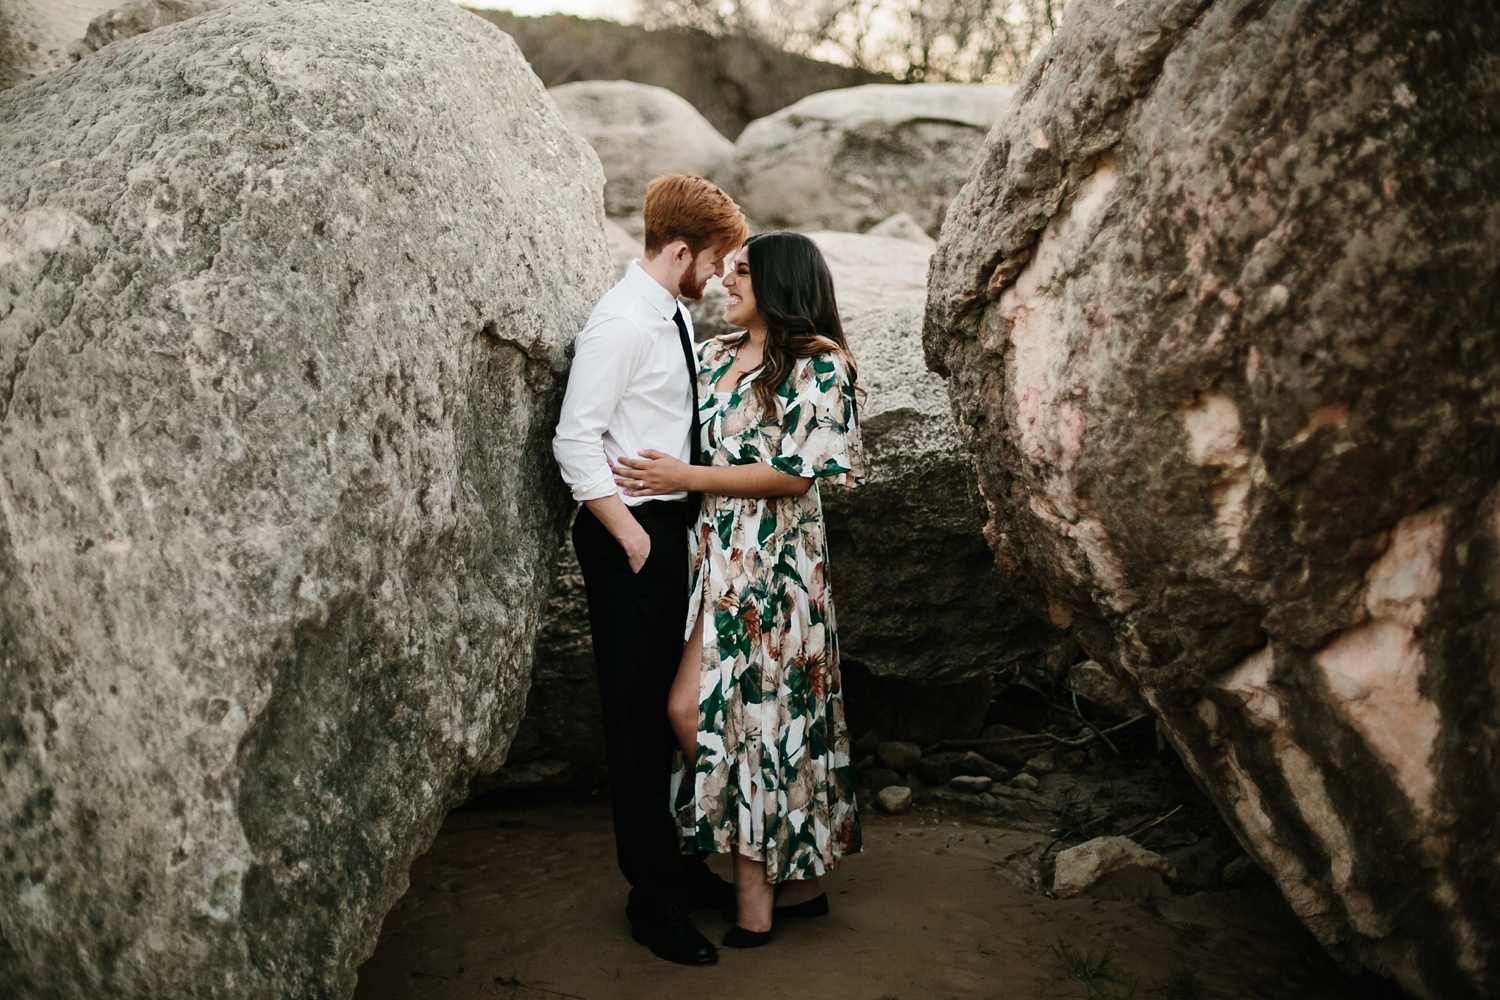 Grant + Lysette - floral dress engagement session by North Texas Wedding Photographer Rachel Meagan Photography093